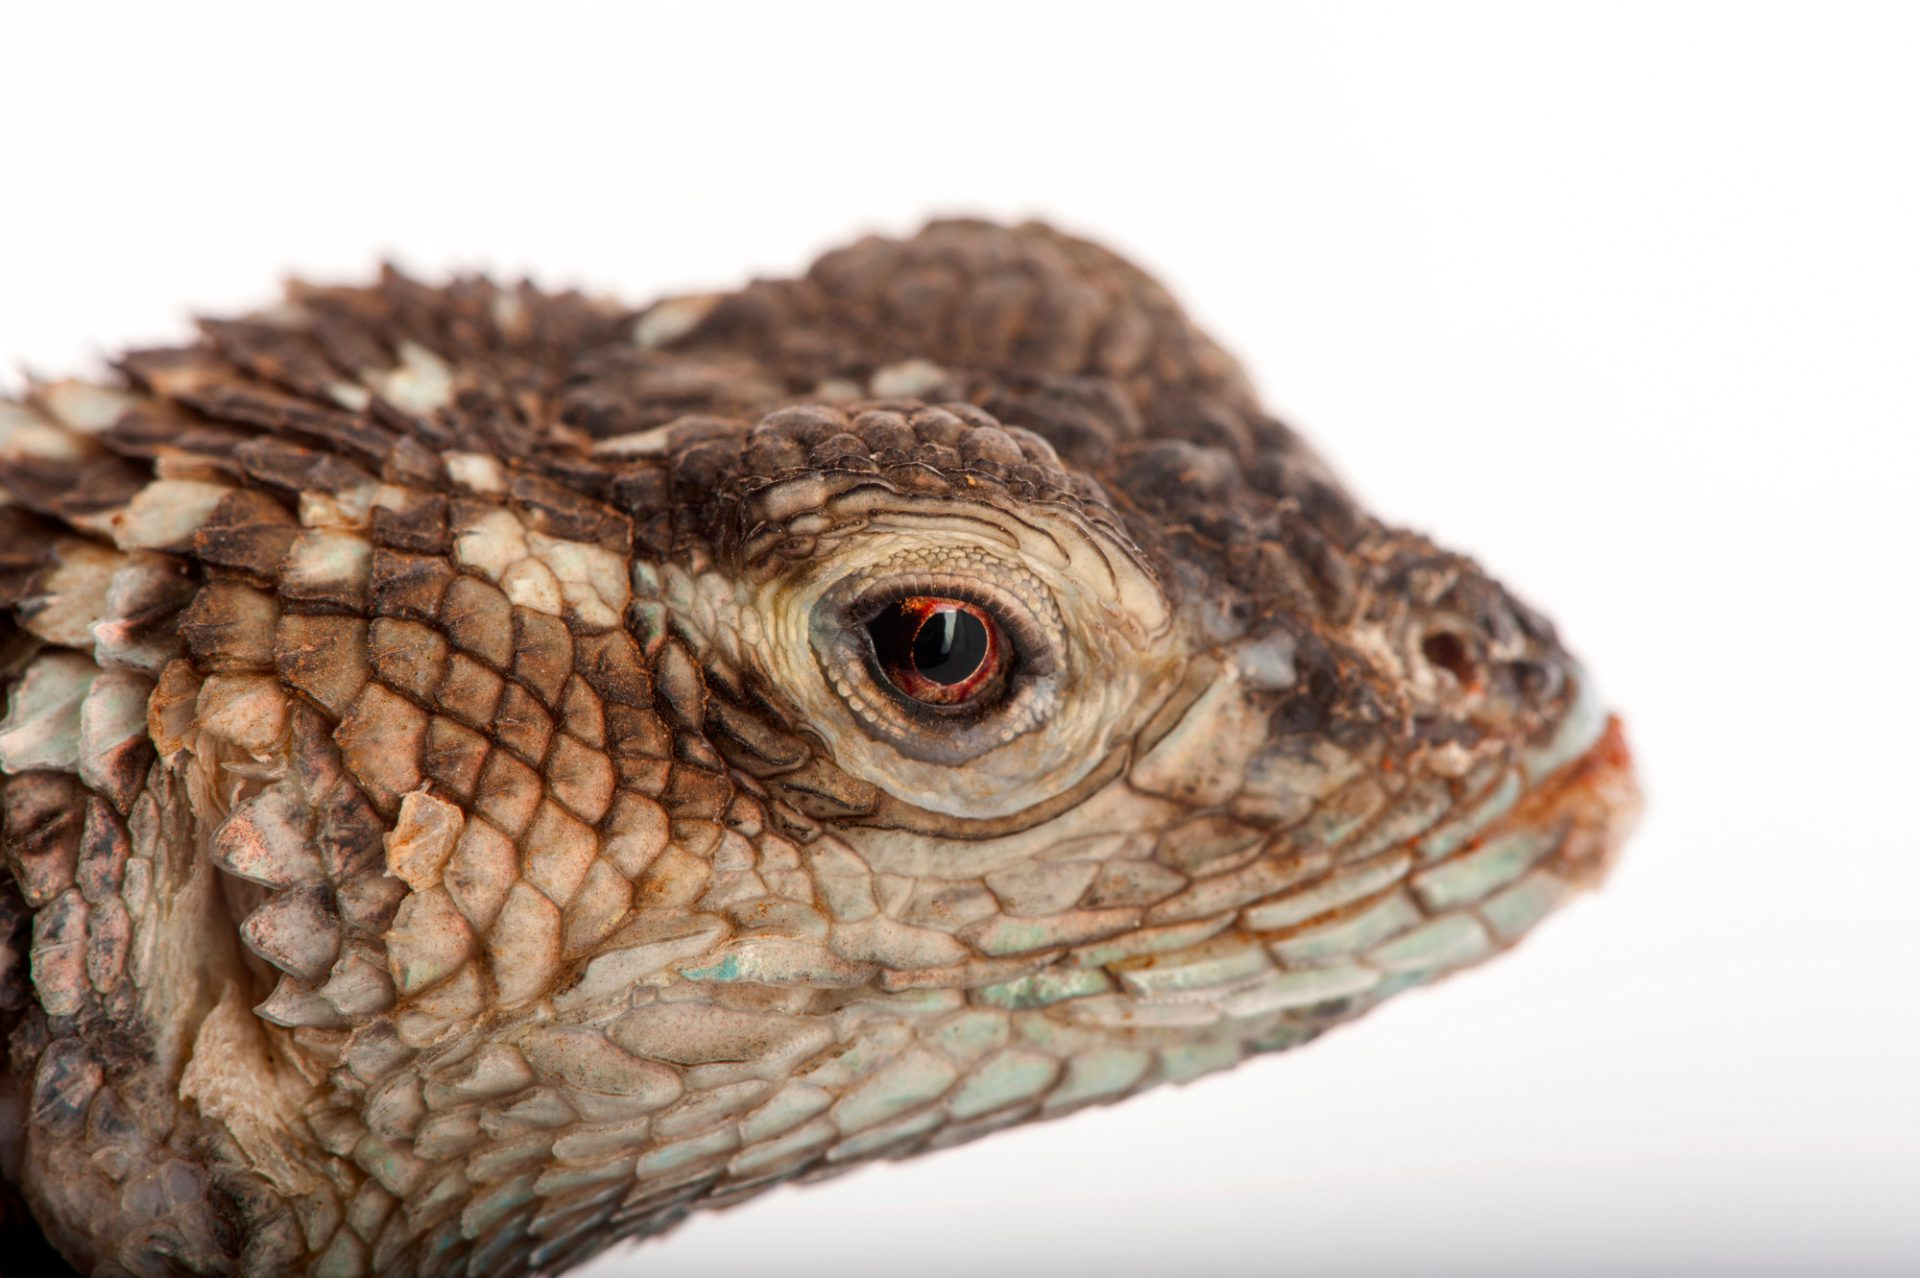 A crevice spiny lizard (Sceloporus poinsetti) at Rolling Hills Wildlife Adventure near Salina, Kansas.